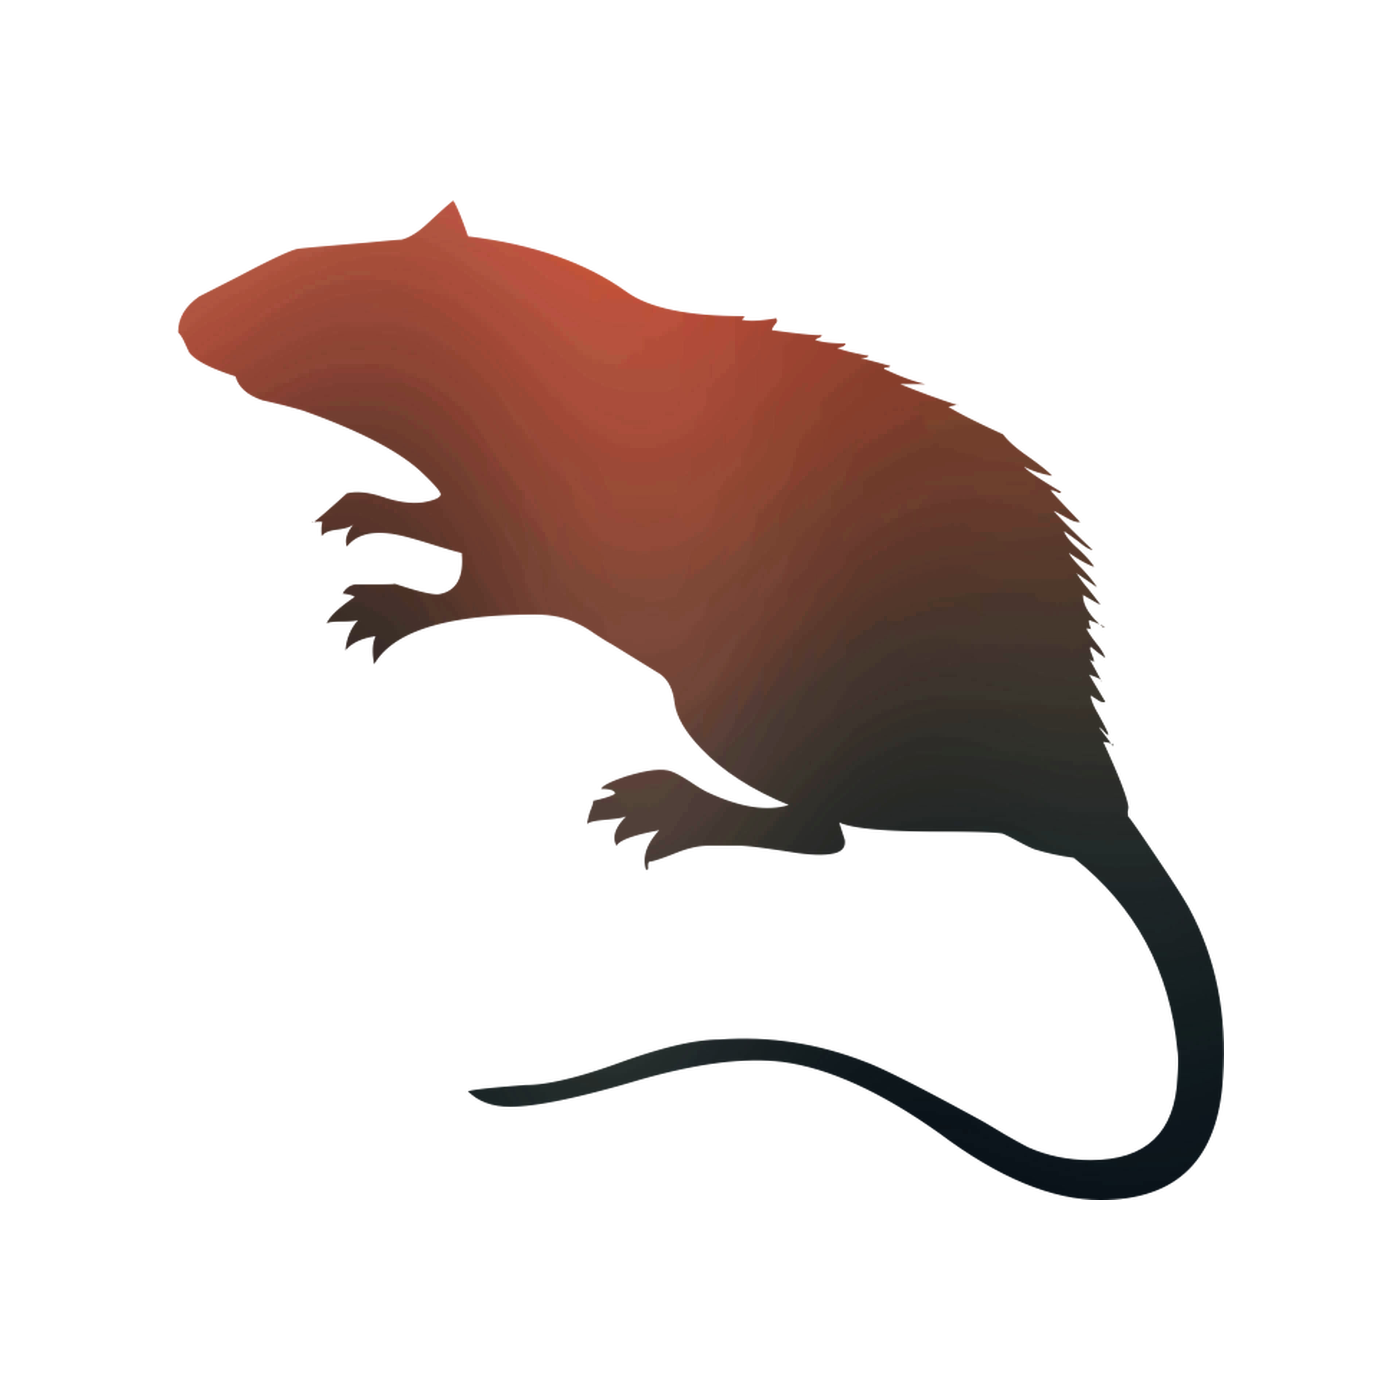 Rat Vector graphics Royalty.